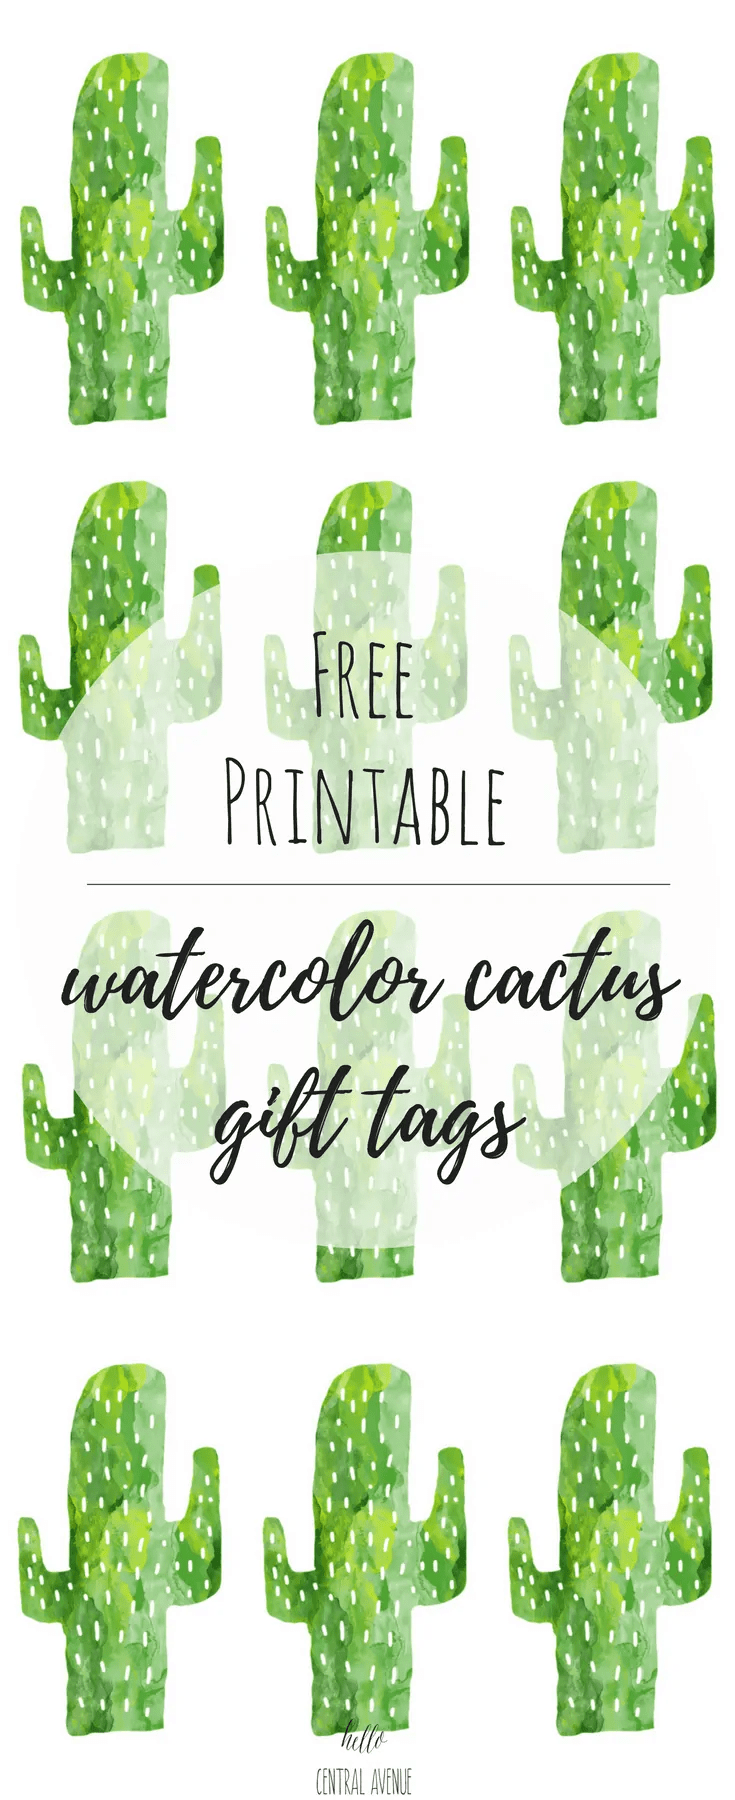 picture relating to Cactus Printable titled Totally free Printable Cactus Present Tags - Hello there Central Road